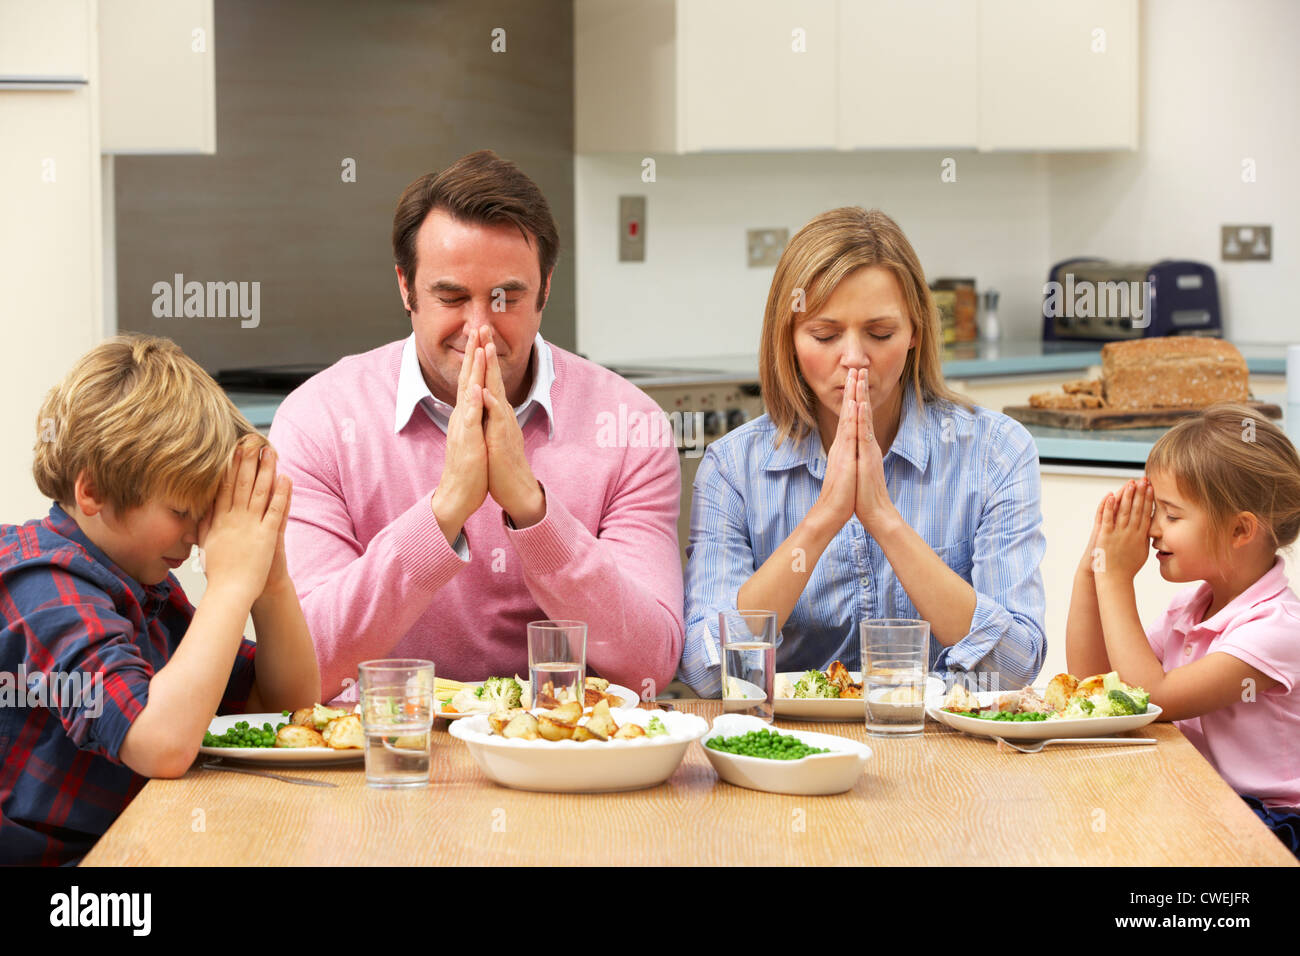 Family saying grace before meal - Stock Image